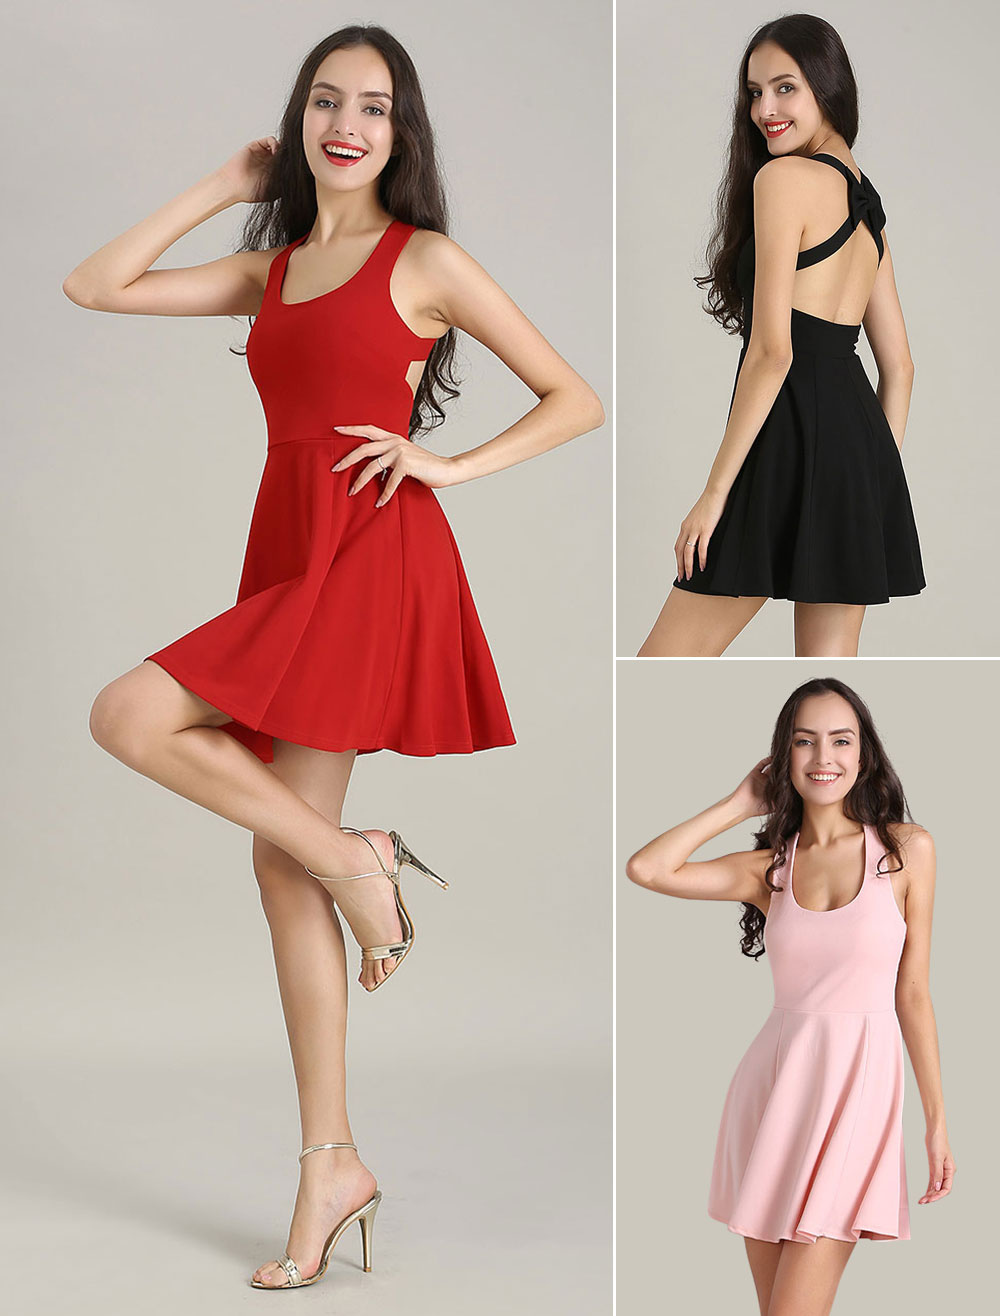 Pink Skater Dress U Neck Elastic Summer Dress With Backless Bow Design March 2018. New collection, free shipping.